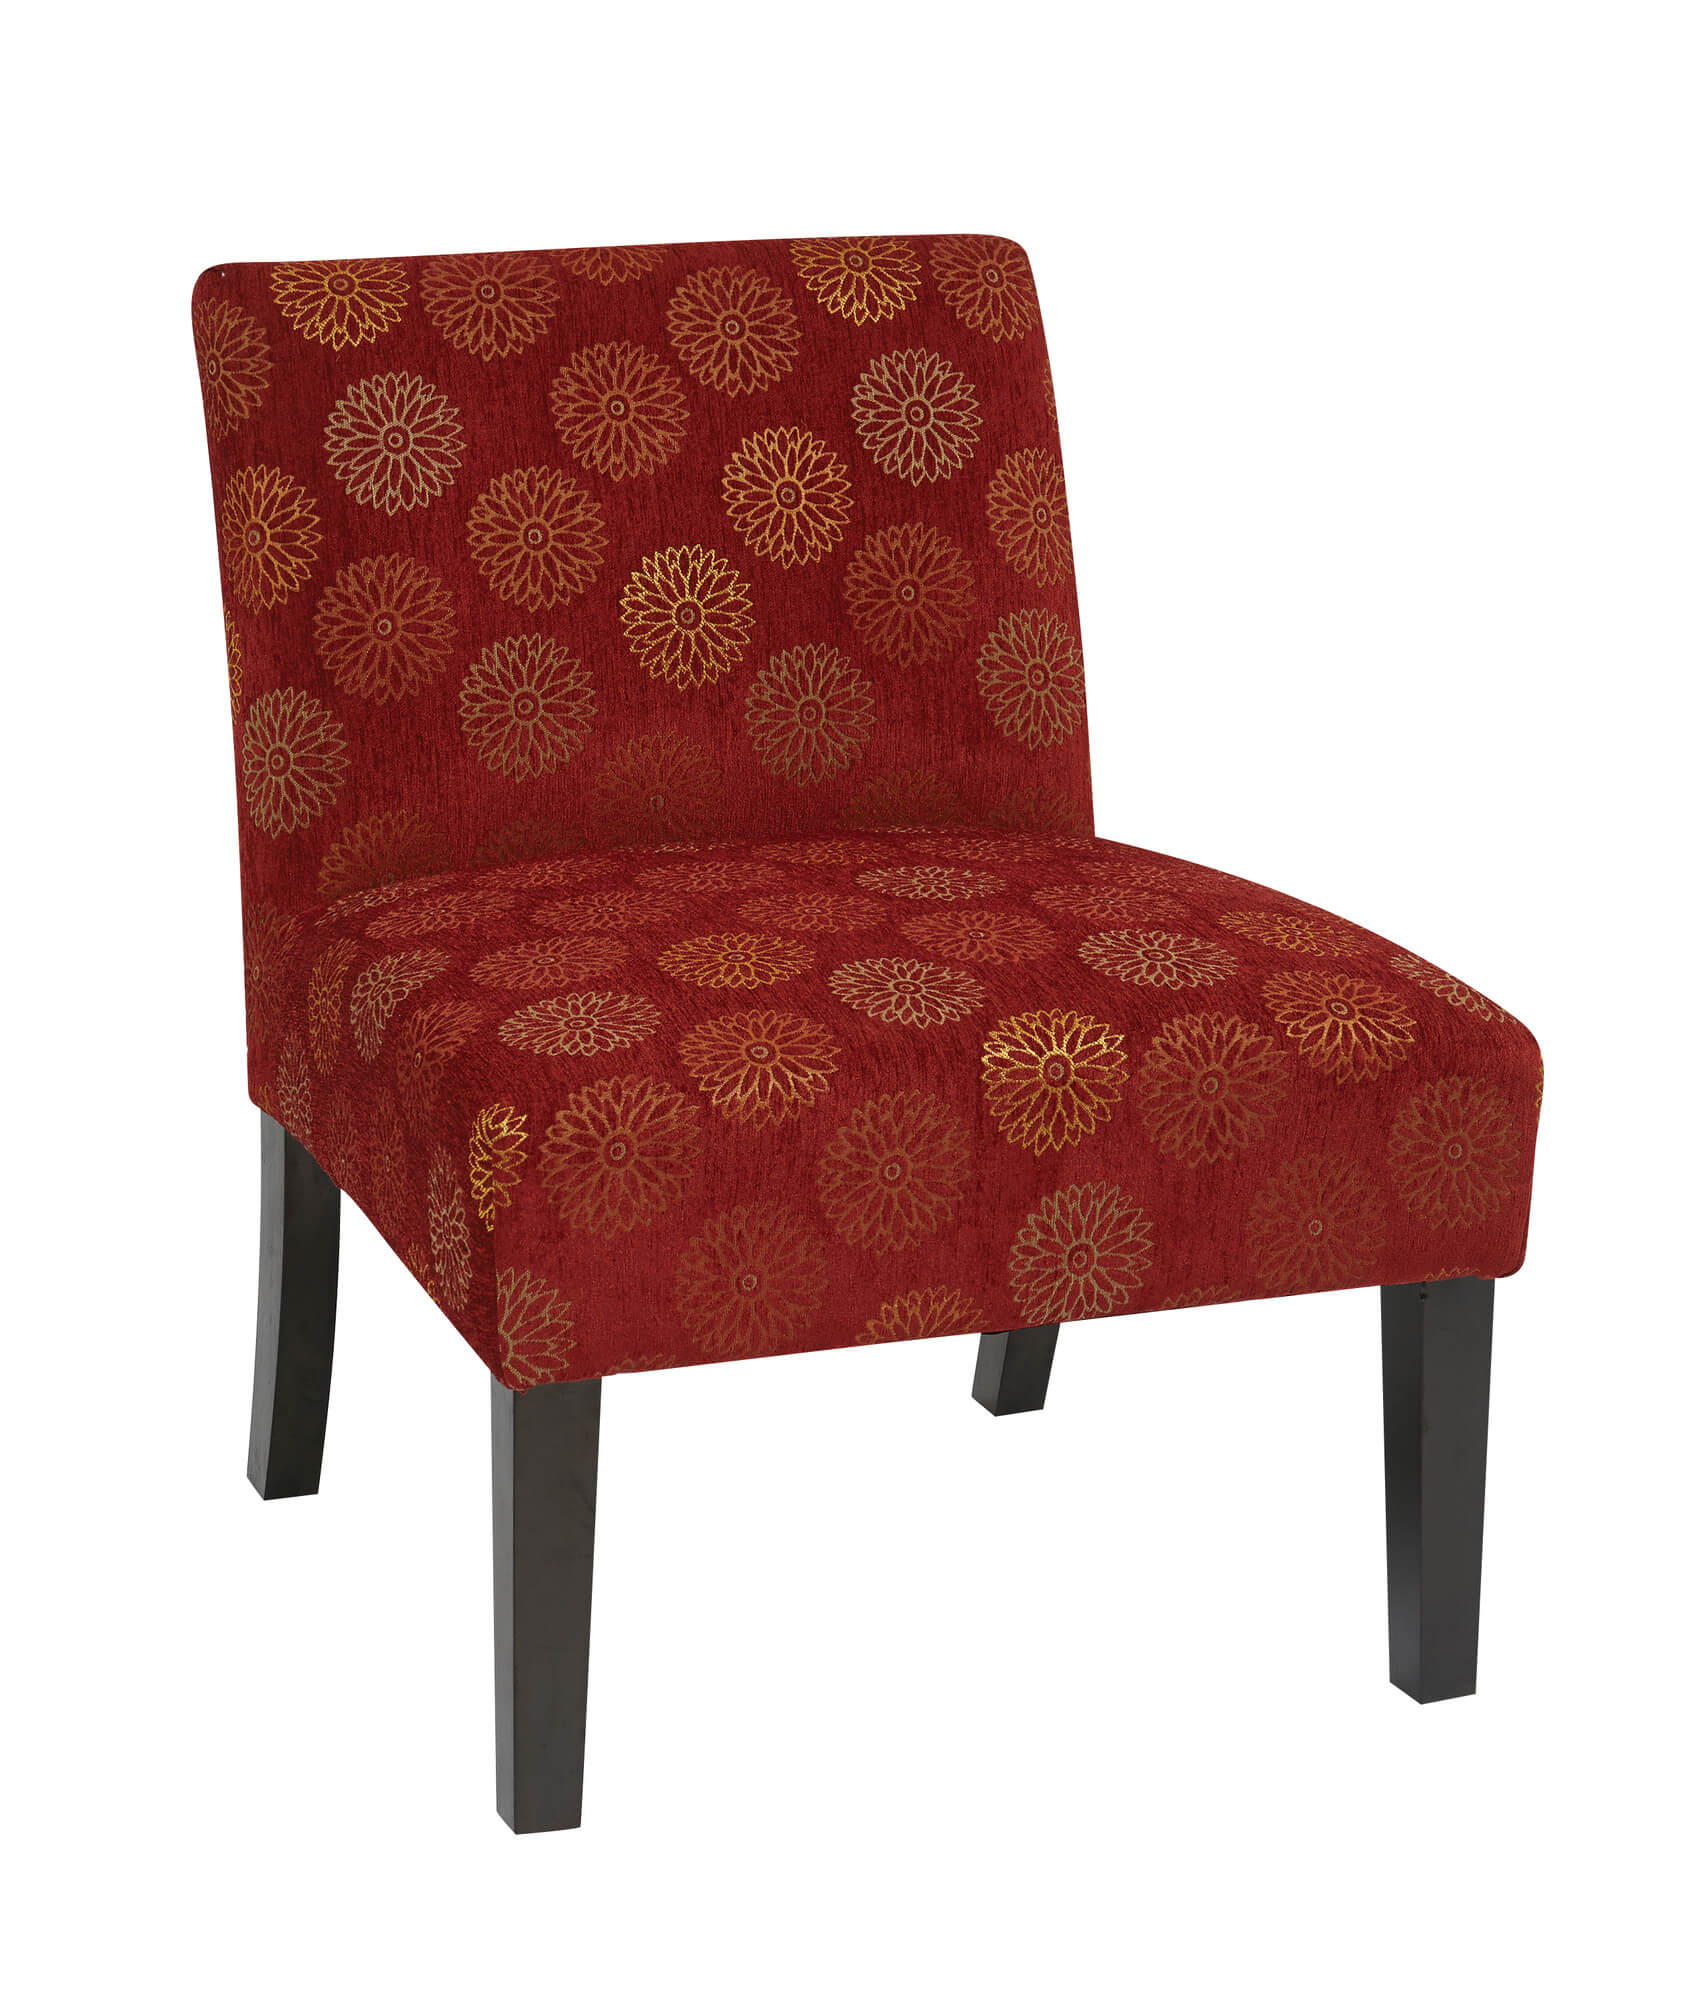 Here's a classic accent chair in that it offers a splash of color to a dark or light room as well as being a slight design so that it complements larger furniture well.